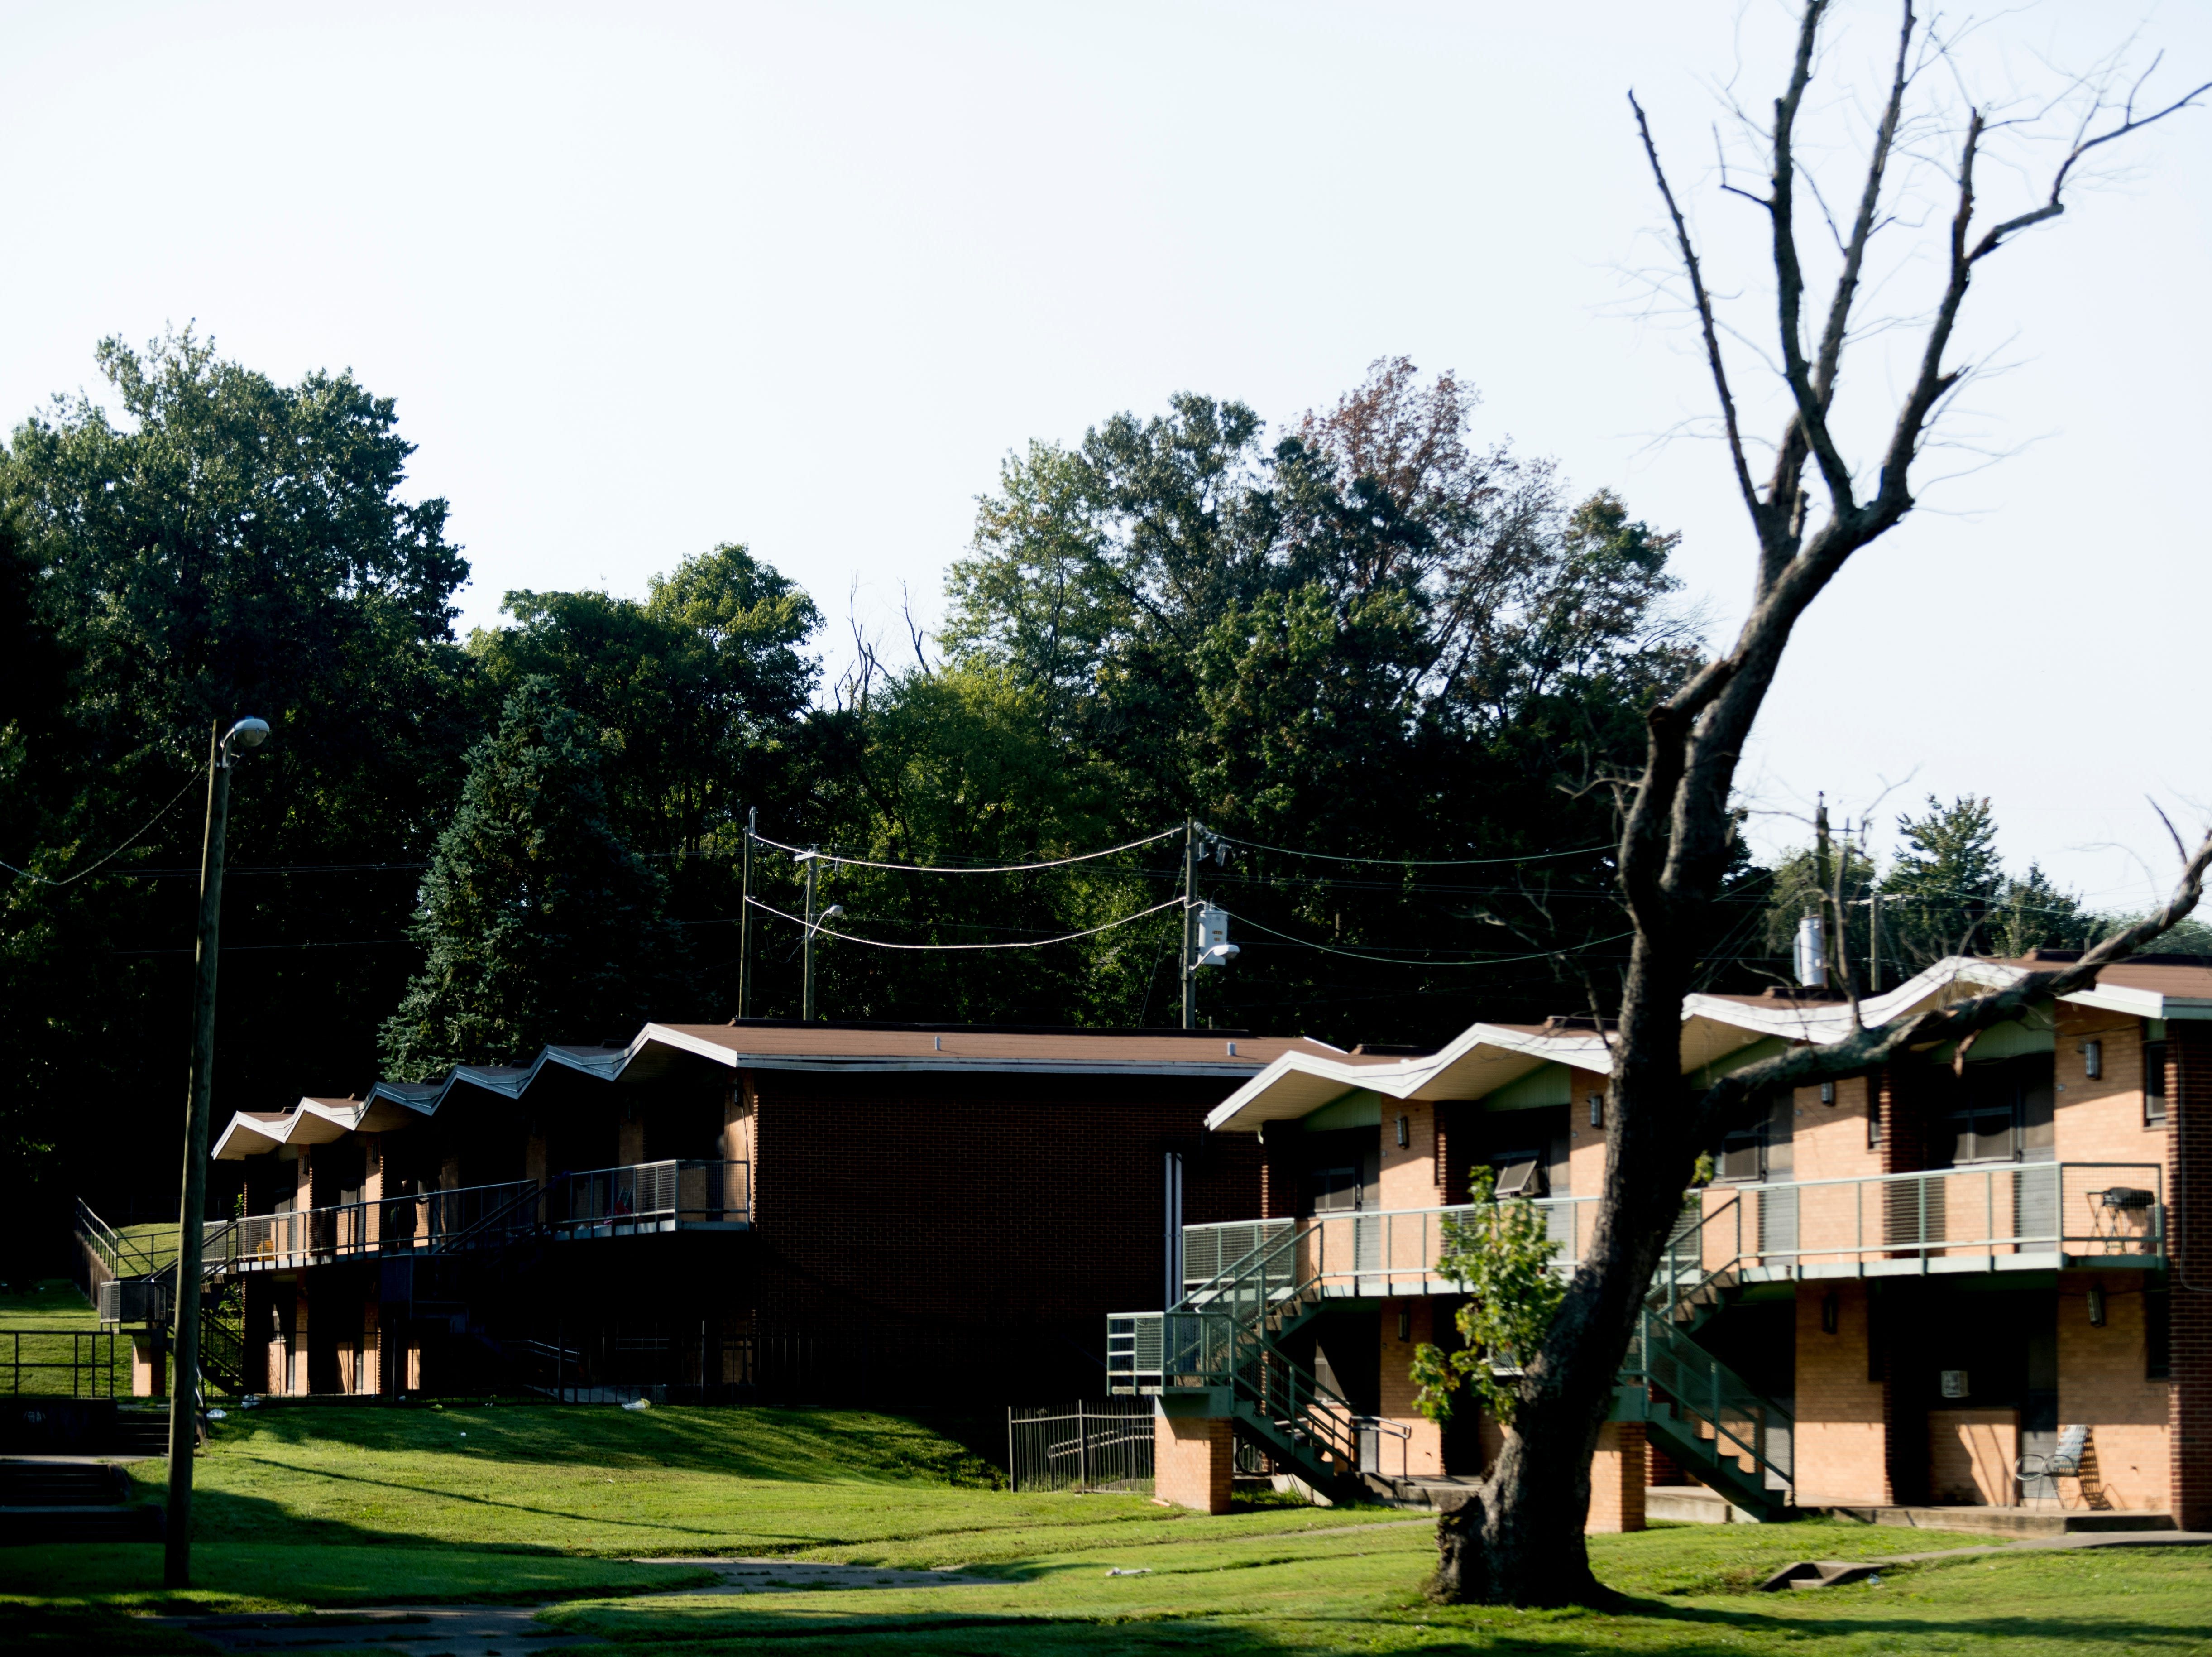 The Walter P. Taylor Homes in Knoxville, Tennessee on Wednesday, September 19, 2018. The 10-building, 84-unit affordable housing complex has been part of Mayor Rogero's focus on affordable housing.